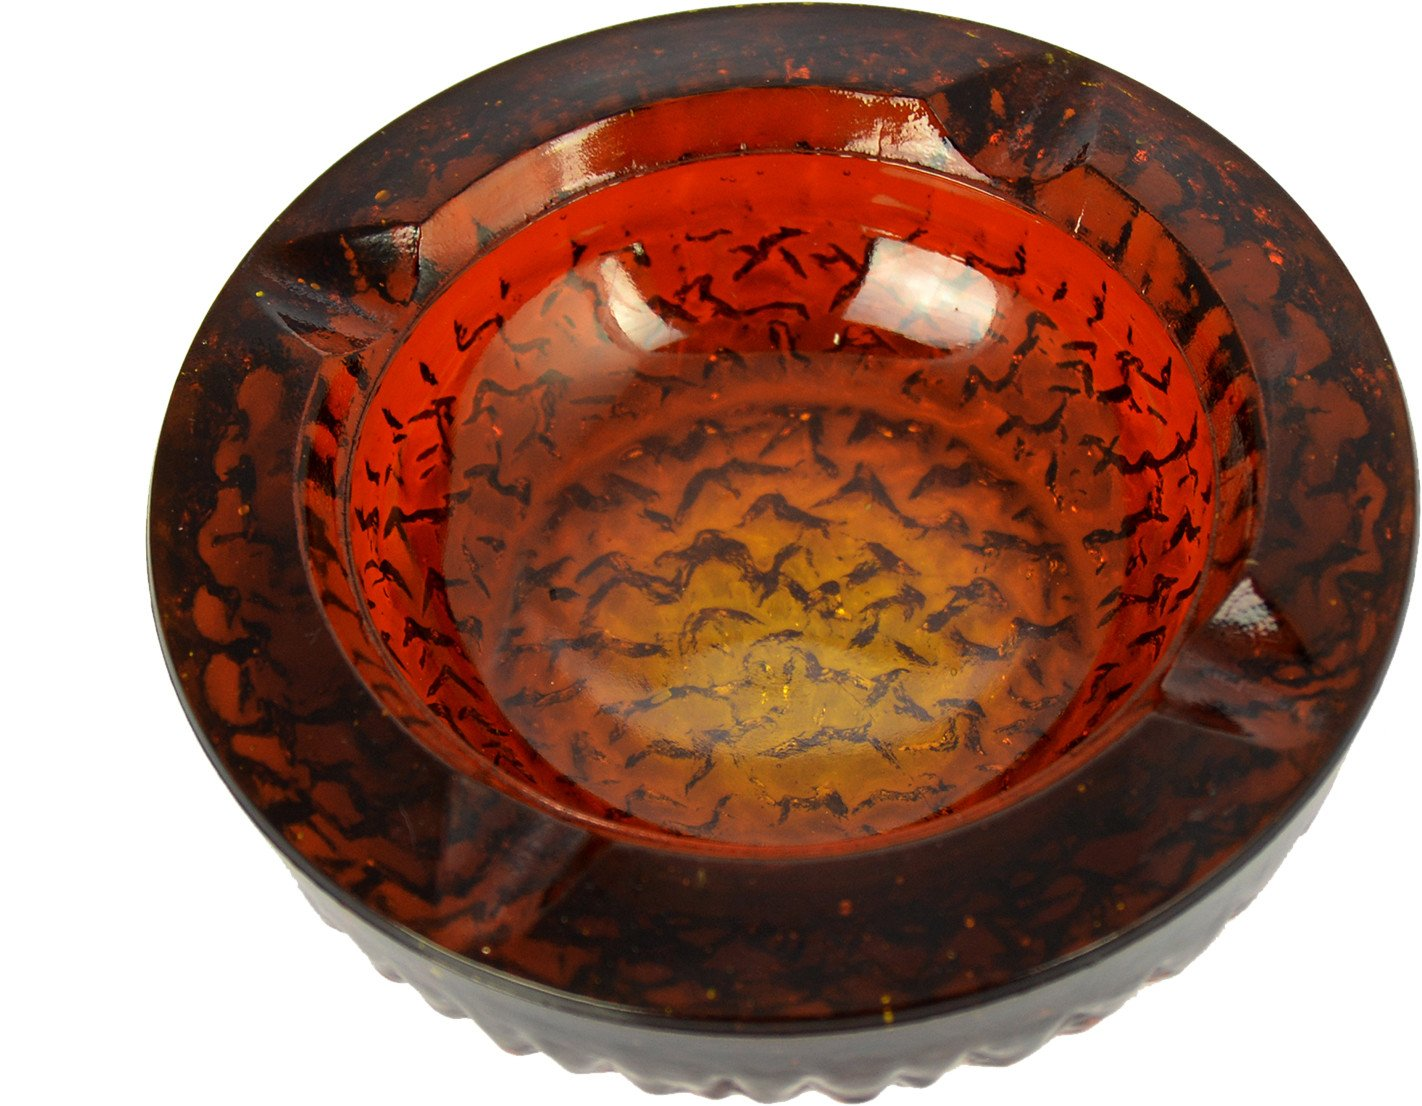 Glass Ashtray by R. Jurnikl for Rudolfova Sklarna, Czechoslovakia, 1960s